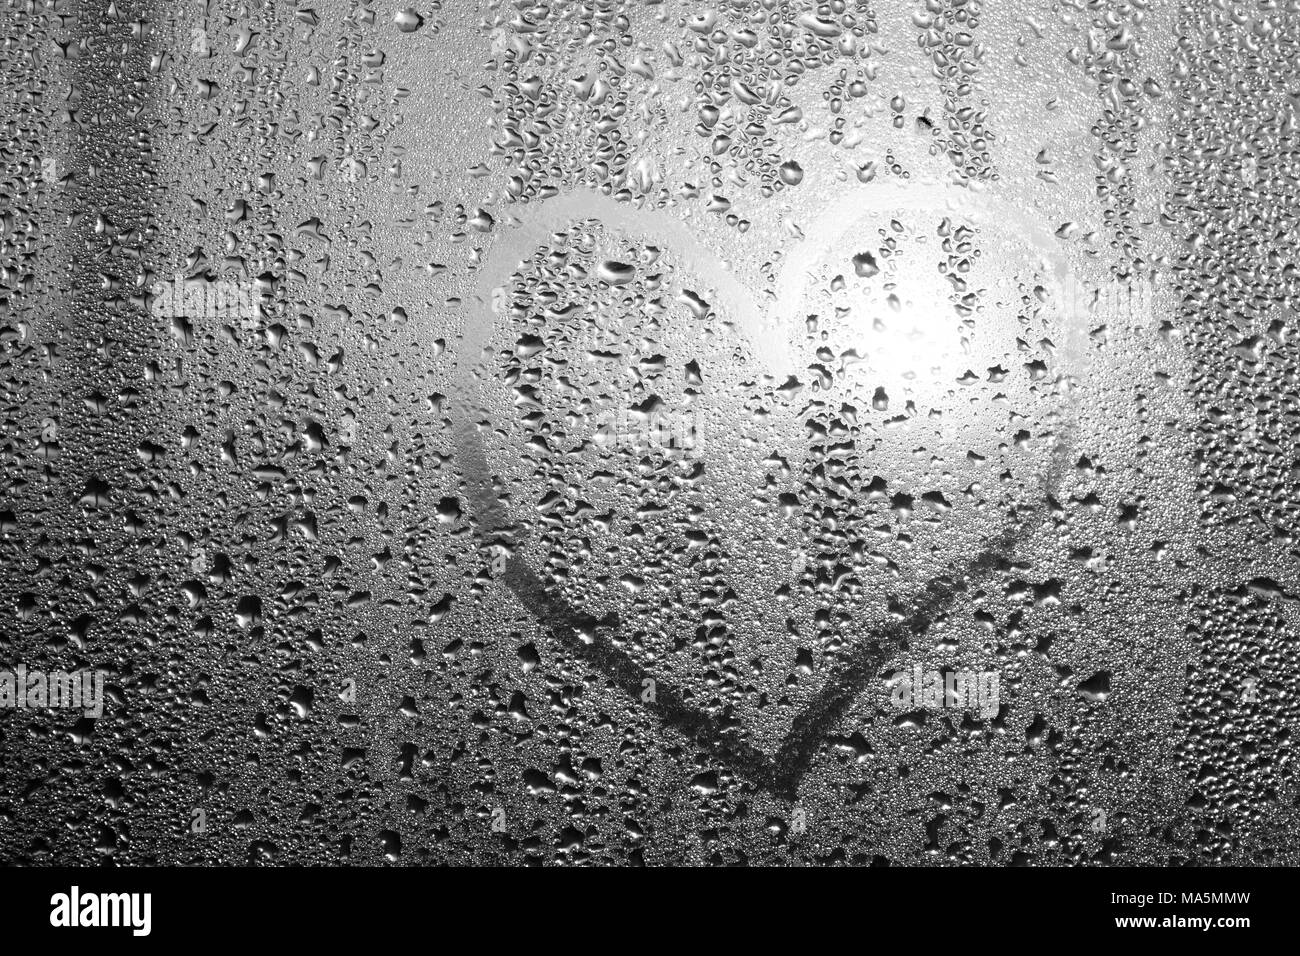 drawing heart on a wet glass. The concept of autumn mood, emotion of love. Copy space for text and notes Stock Photo